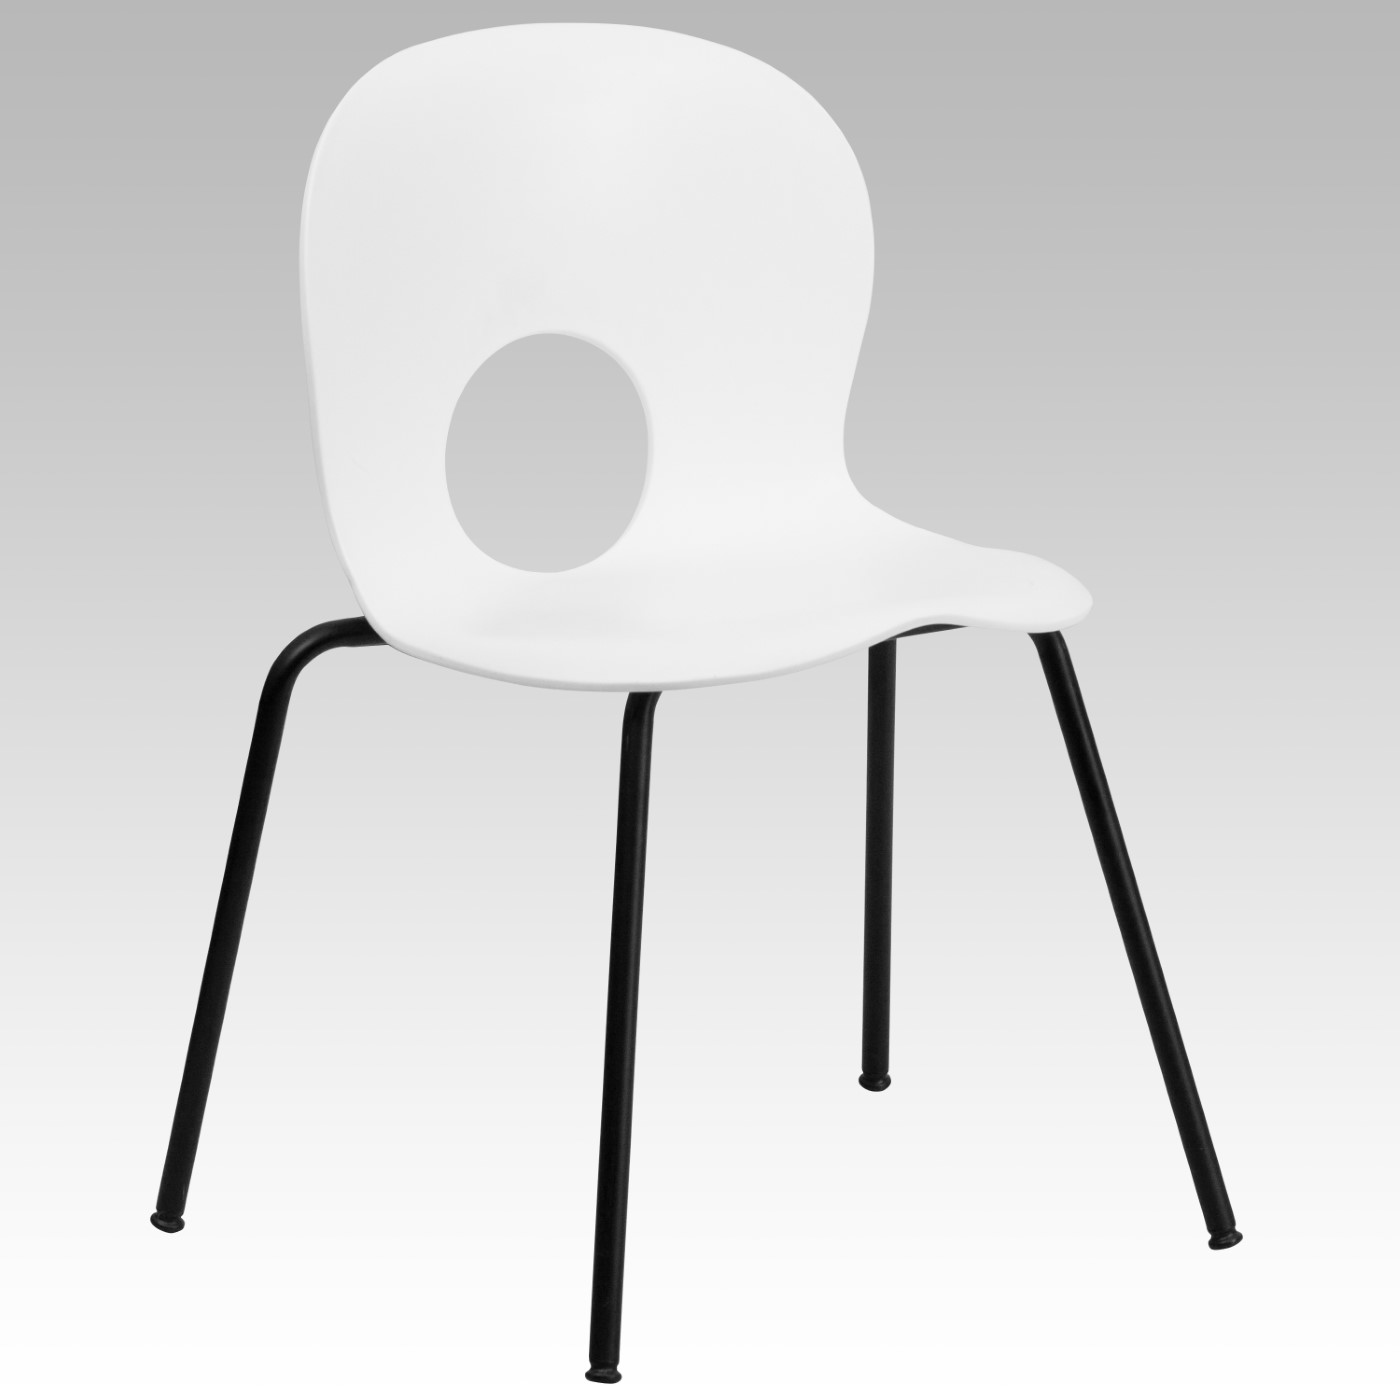 TOUGH ENOUGH Series 770 lb. Capacity Designer White Plastic Stack Chair with Black Frame